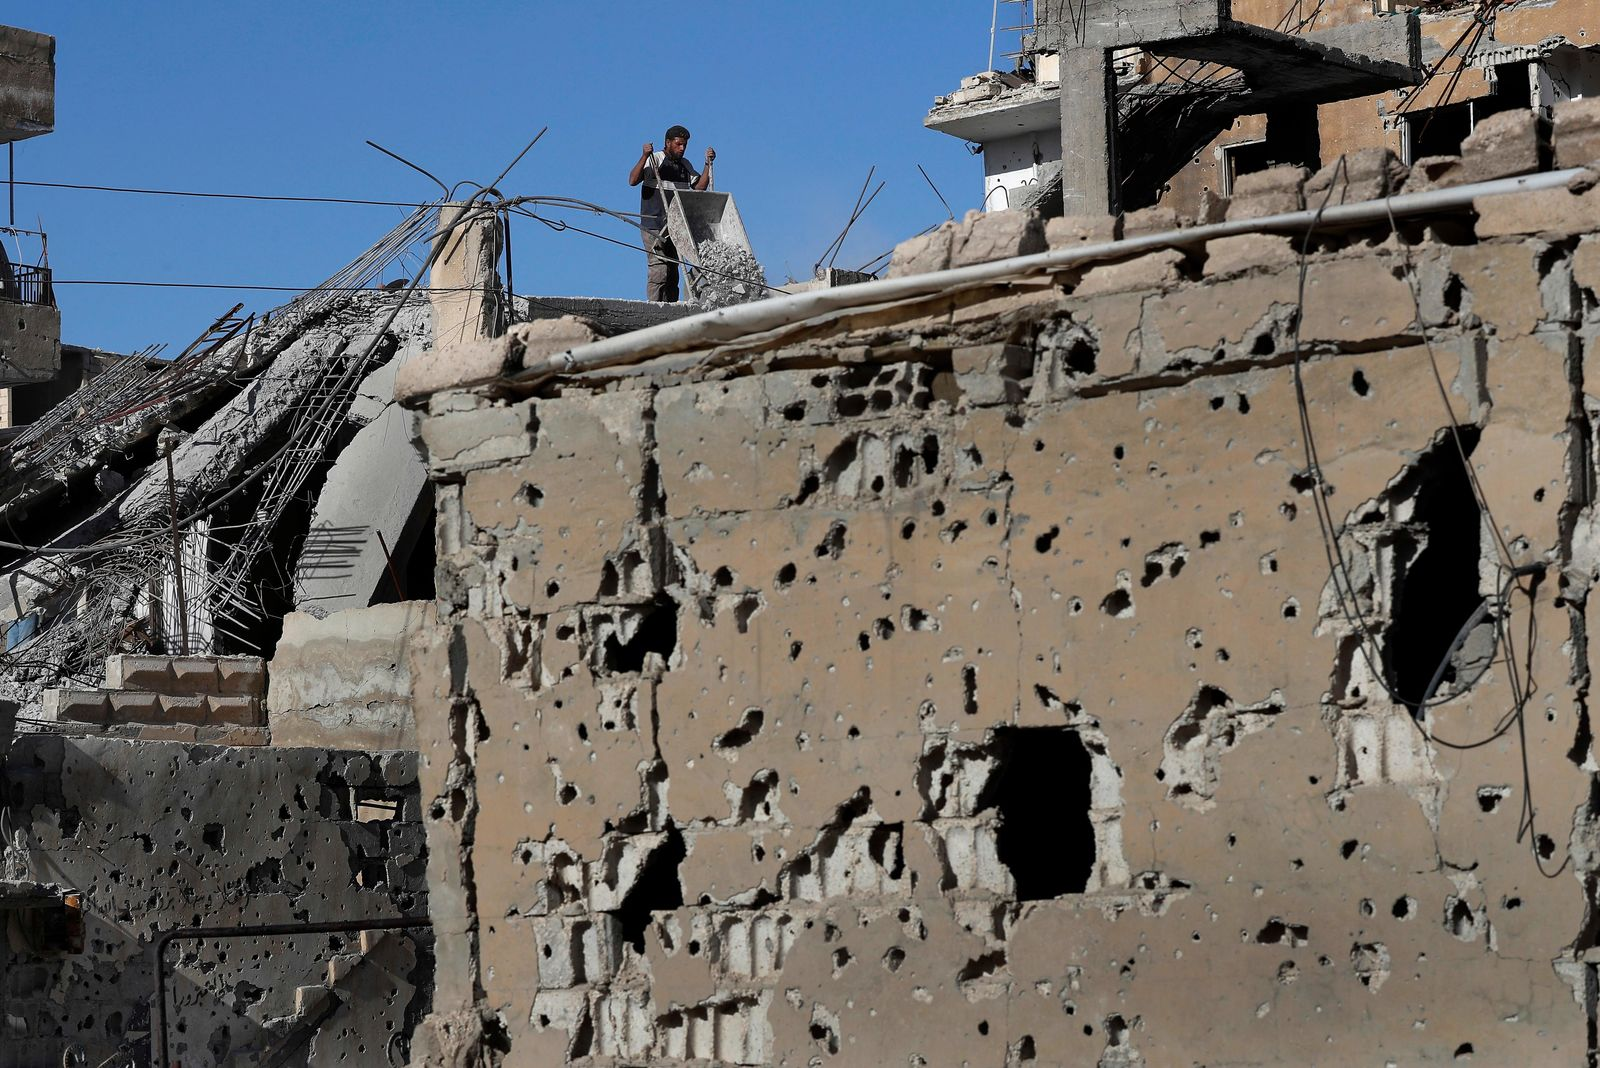 In this Thursday, April 5, 2018 photo, a man removes rubble from his house that was damaged during fighting between U.S.-backed Syrian Democratic Forces fighters and Islamic State militants, in Raqqa, Syria.  U.S. President Donald Trump's decision Wednesday Dec. 19, 2018, to withdraw U.S. troops from Syria has rattled Washington's Kurdish allies, who are its most reliable partner in Syria and among the most effective ground forces battling the Islamic State group. (AP Photo/Hussein Malla, FILE)